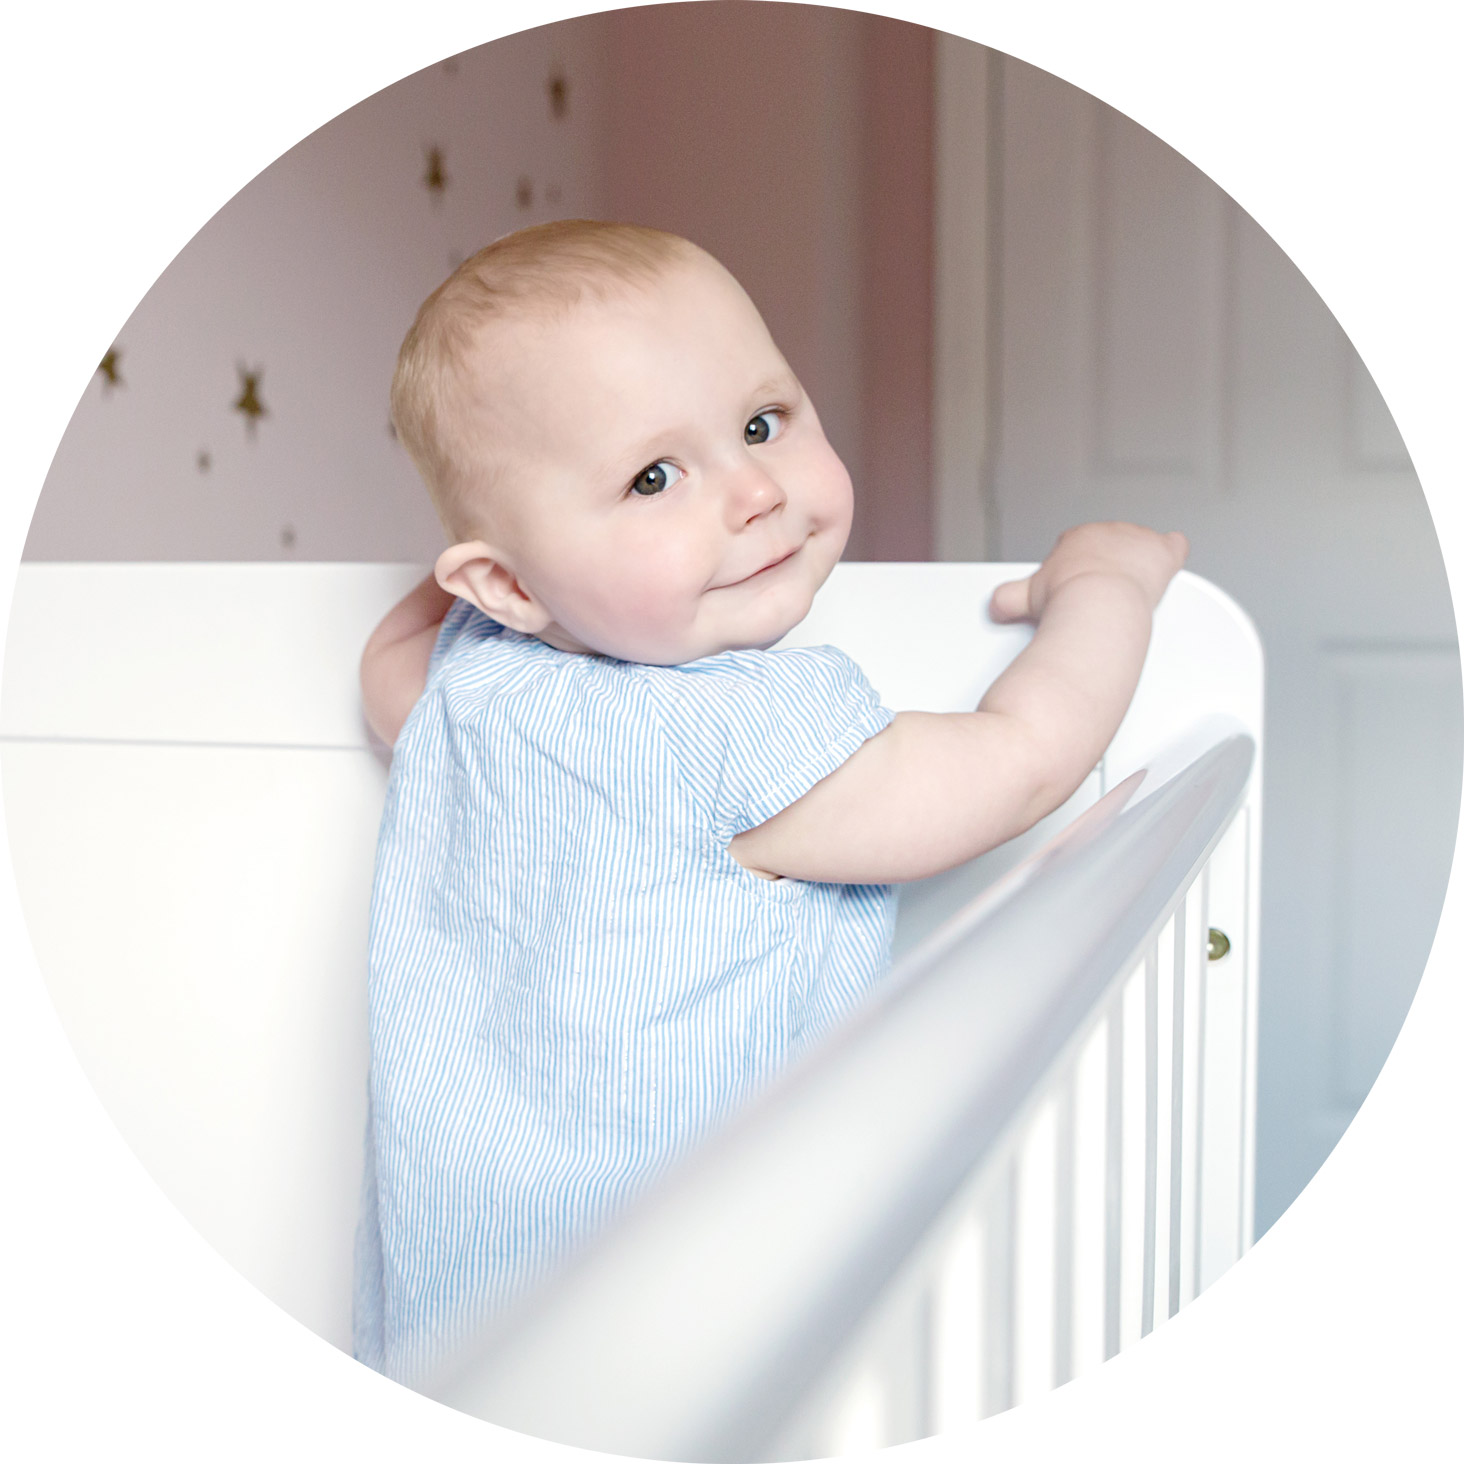 professional baby photography in hemel hempstead - 1 year old smiling in her cot